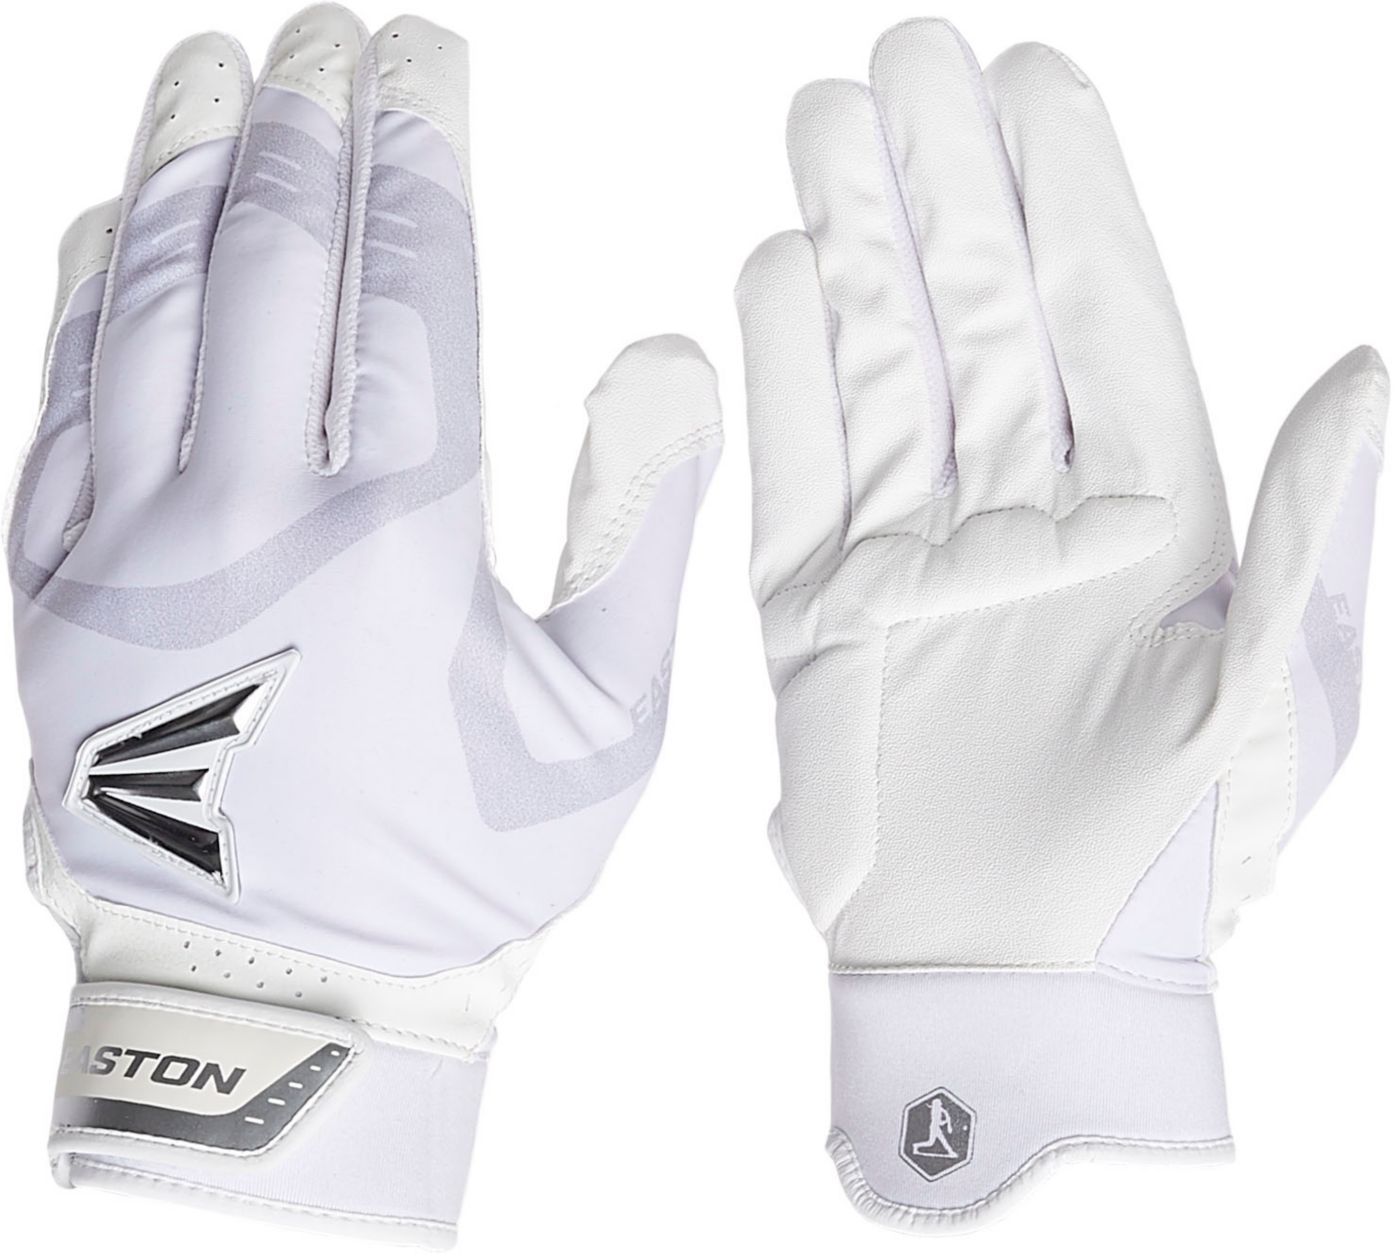 Easton Adult Gametime Elite Batting Gloves 2019